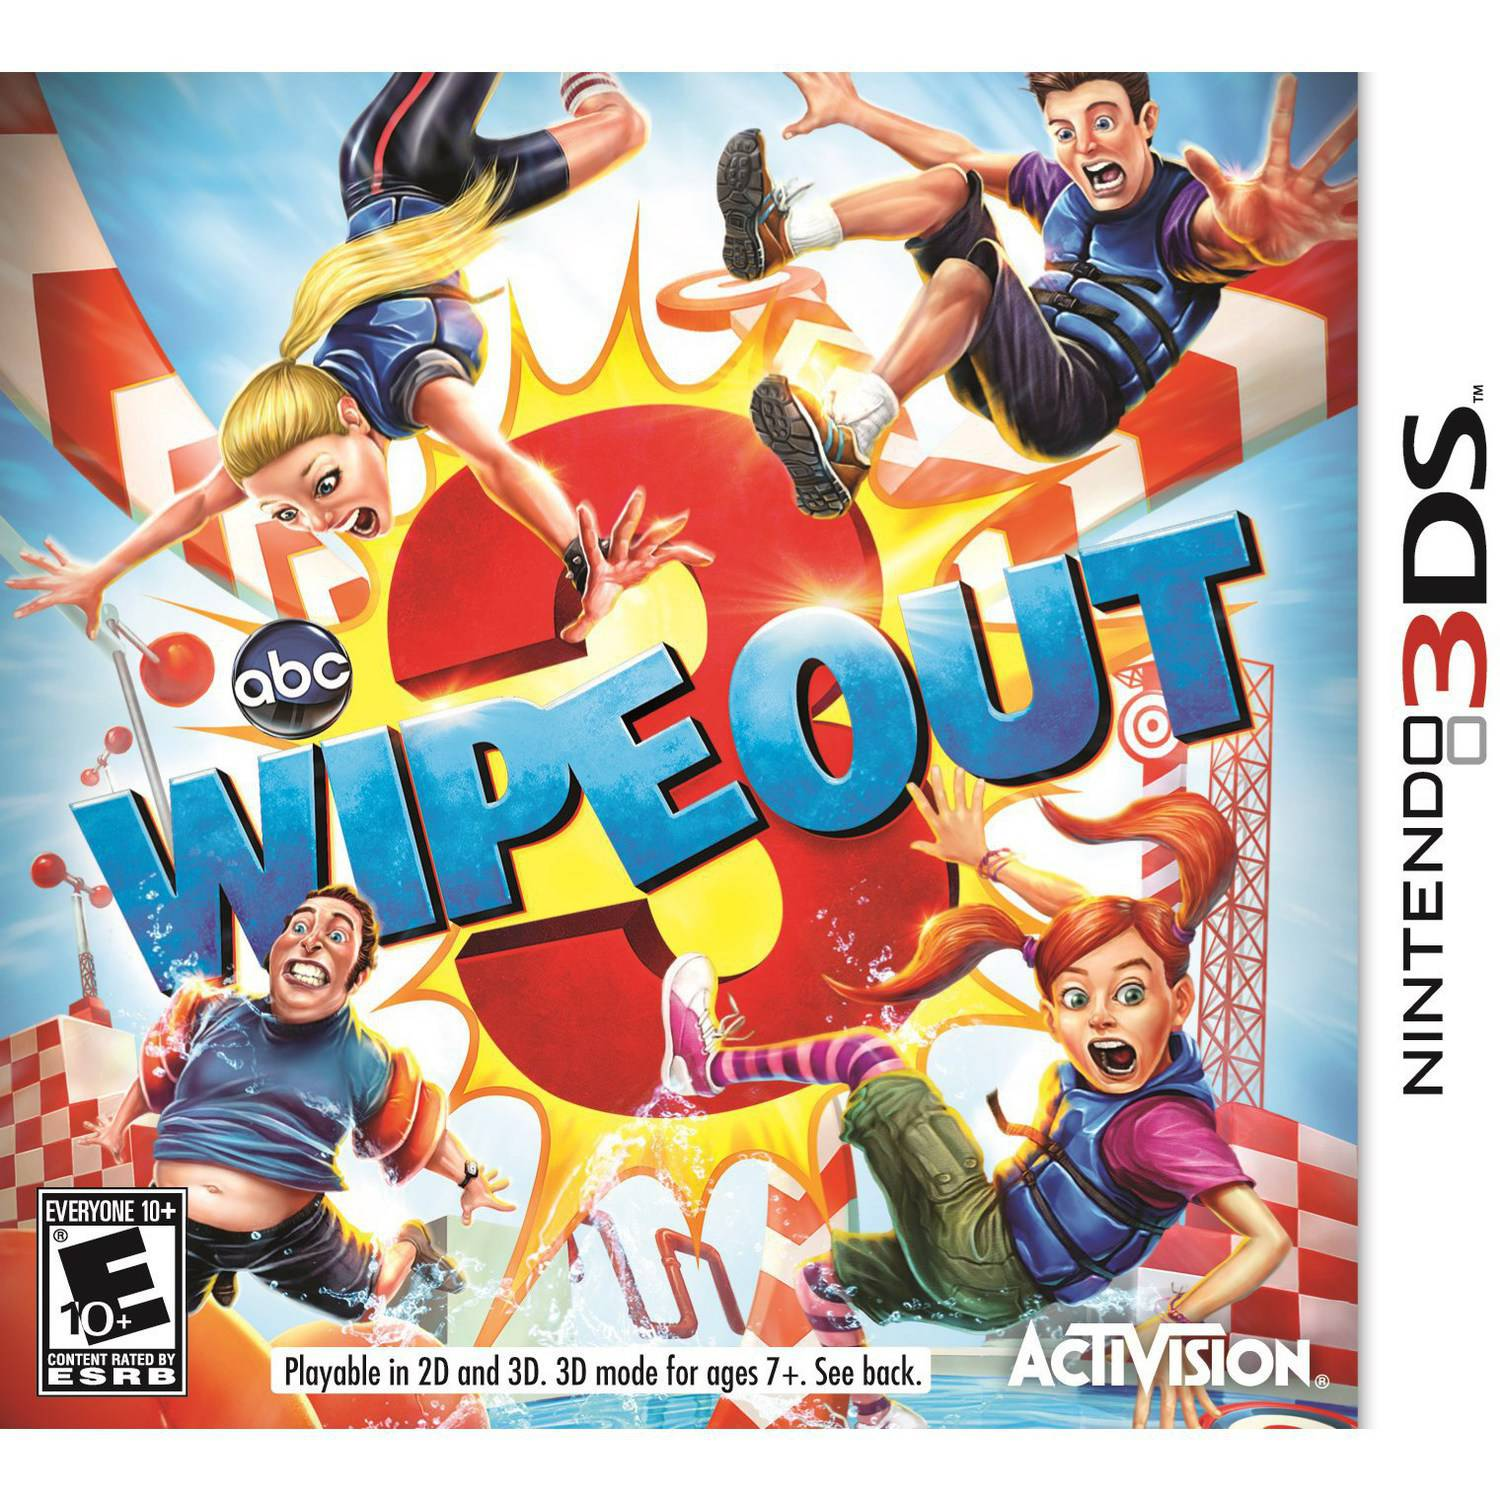 Wipeout 3 (Nintendo 3DS)